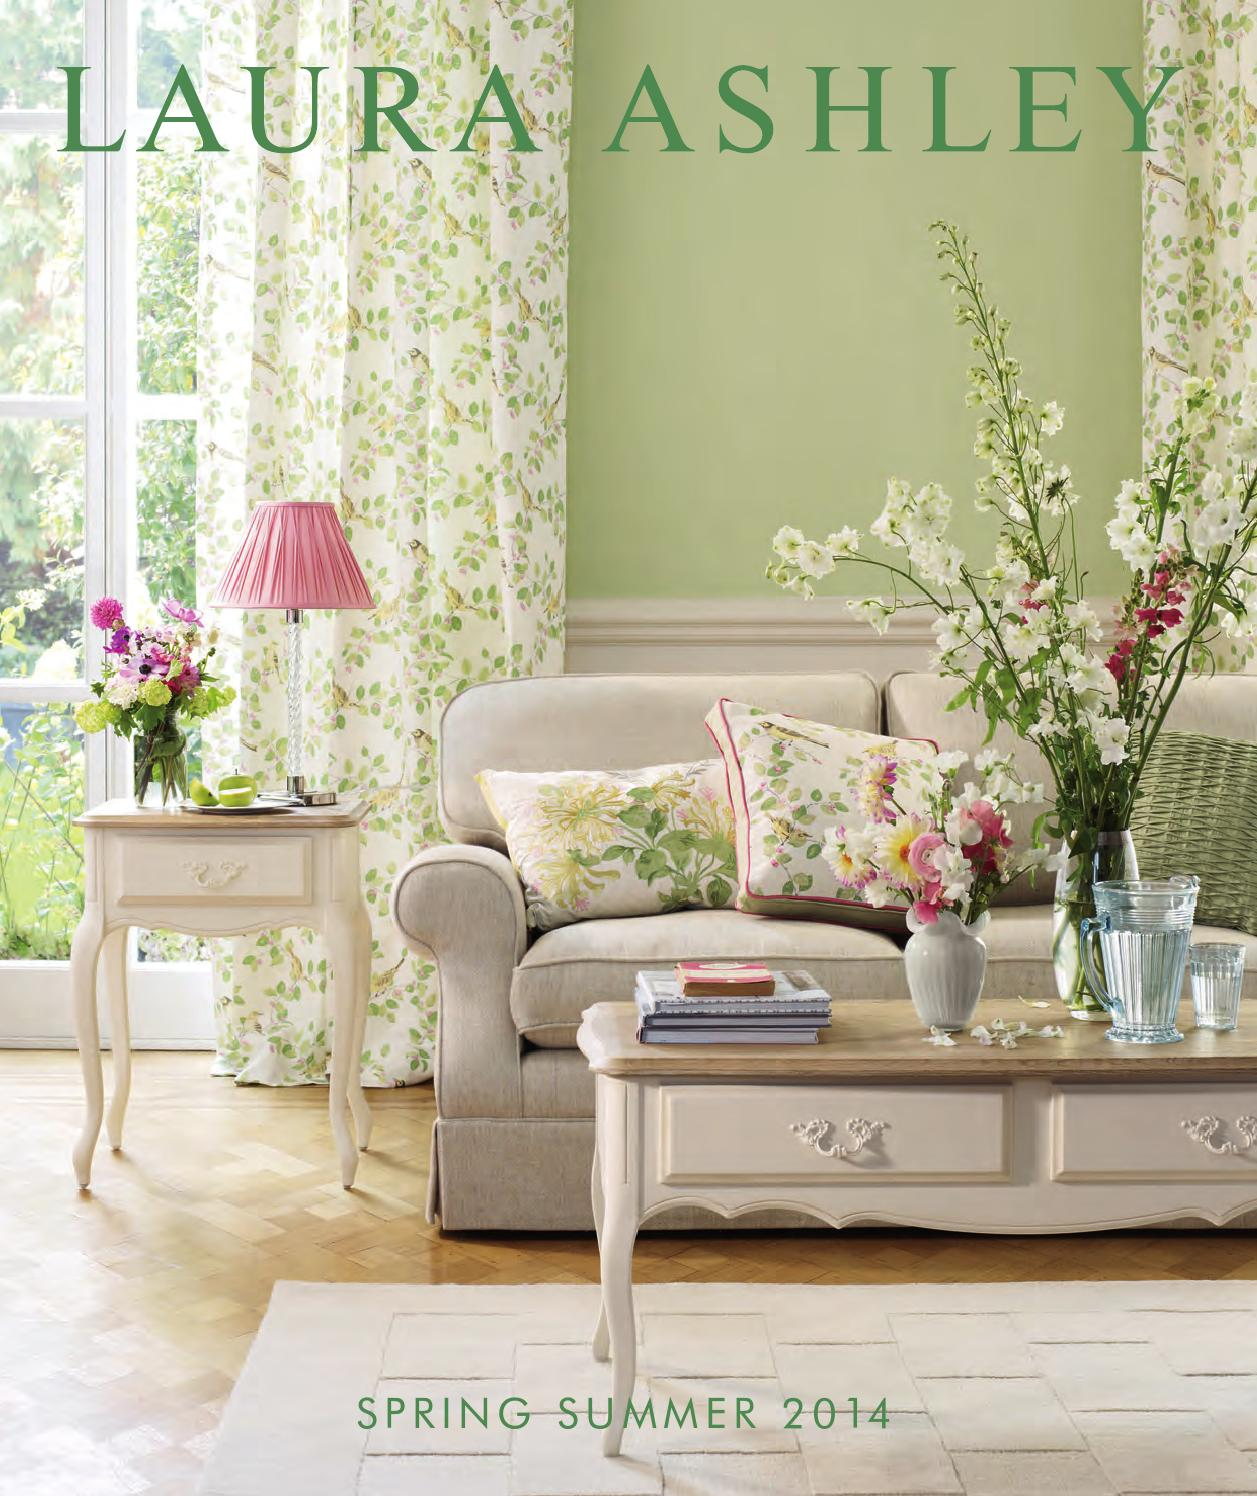 Laura Ashley Home Spring Summer 2014 By Laura Ashley